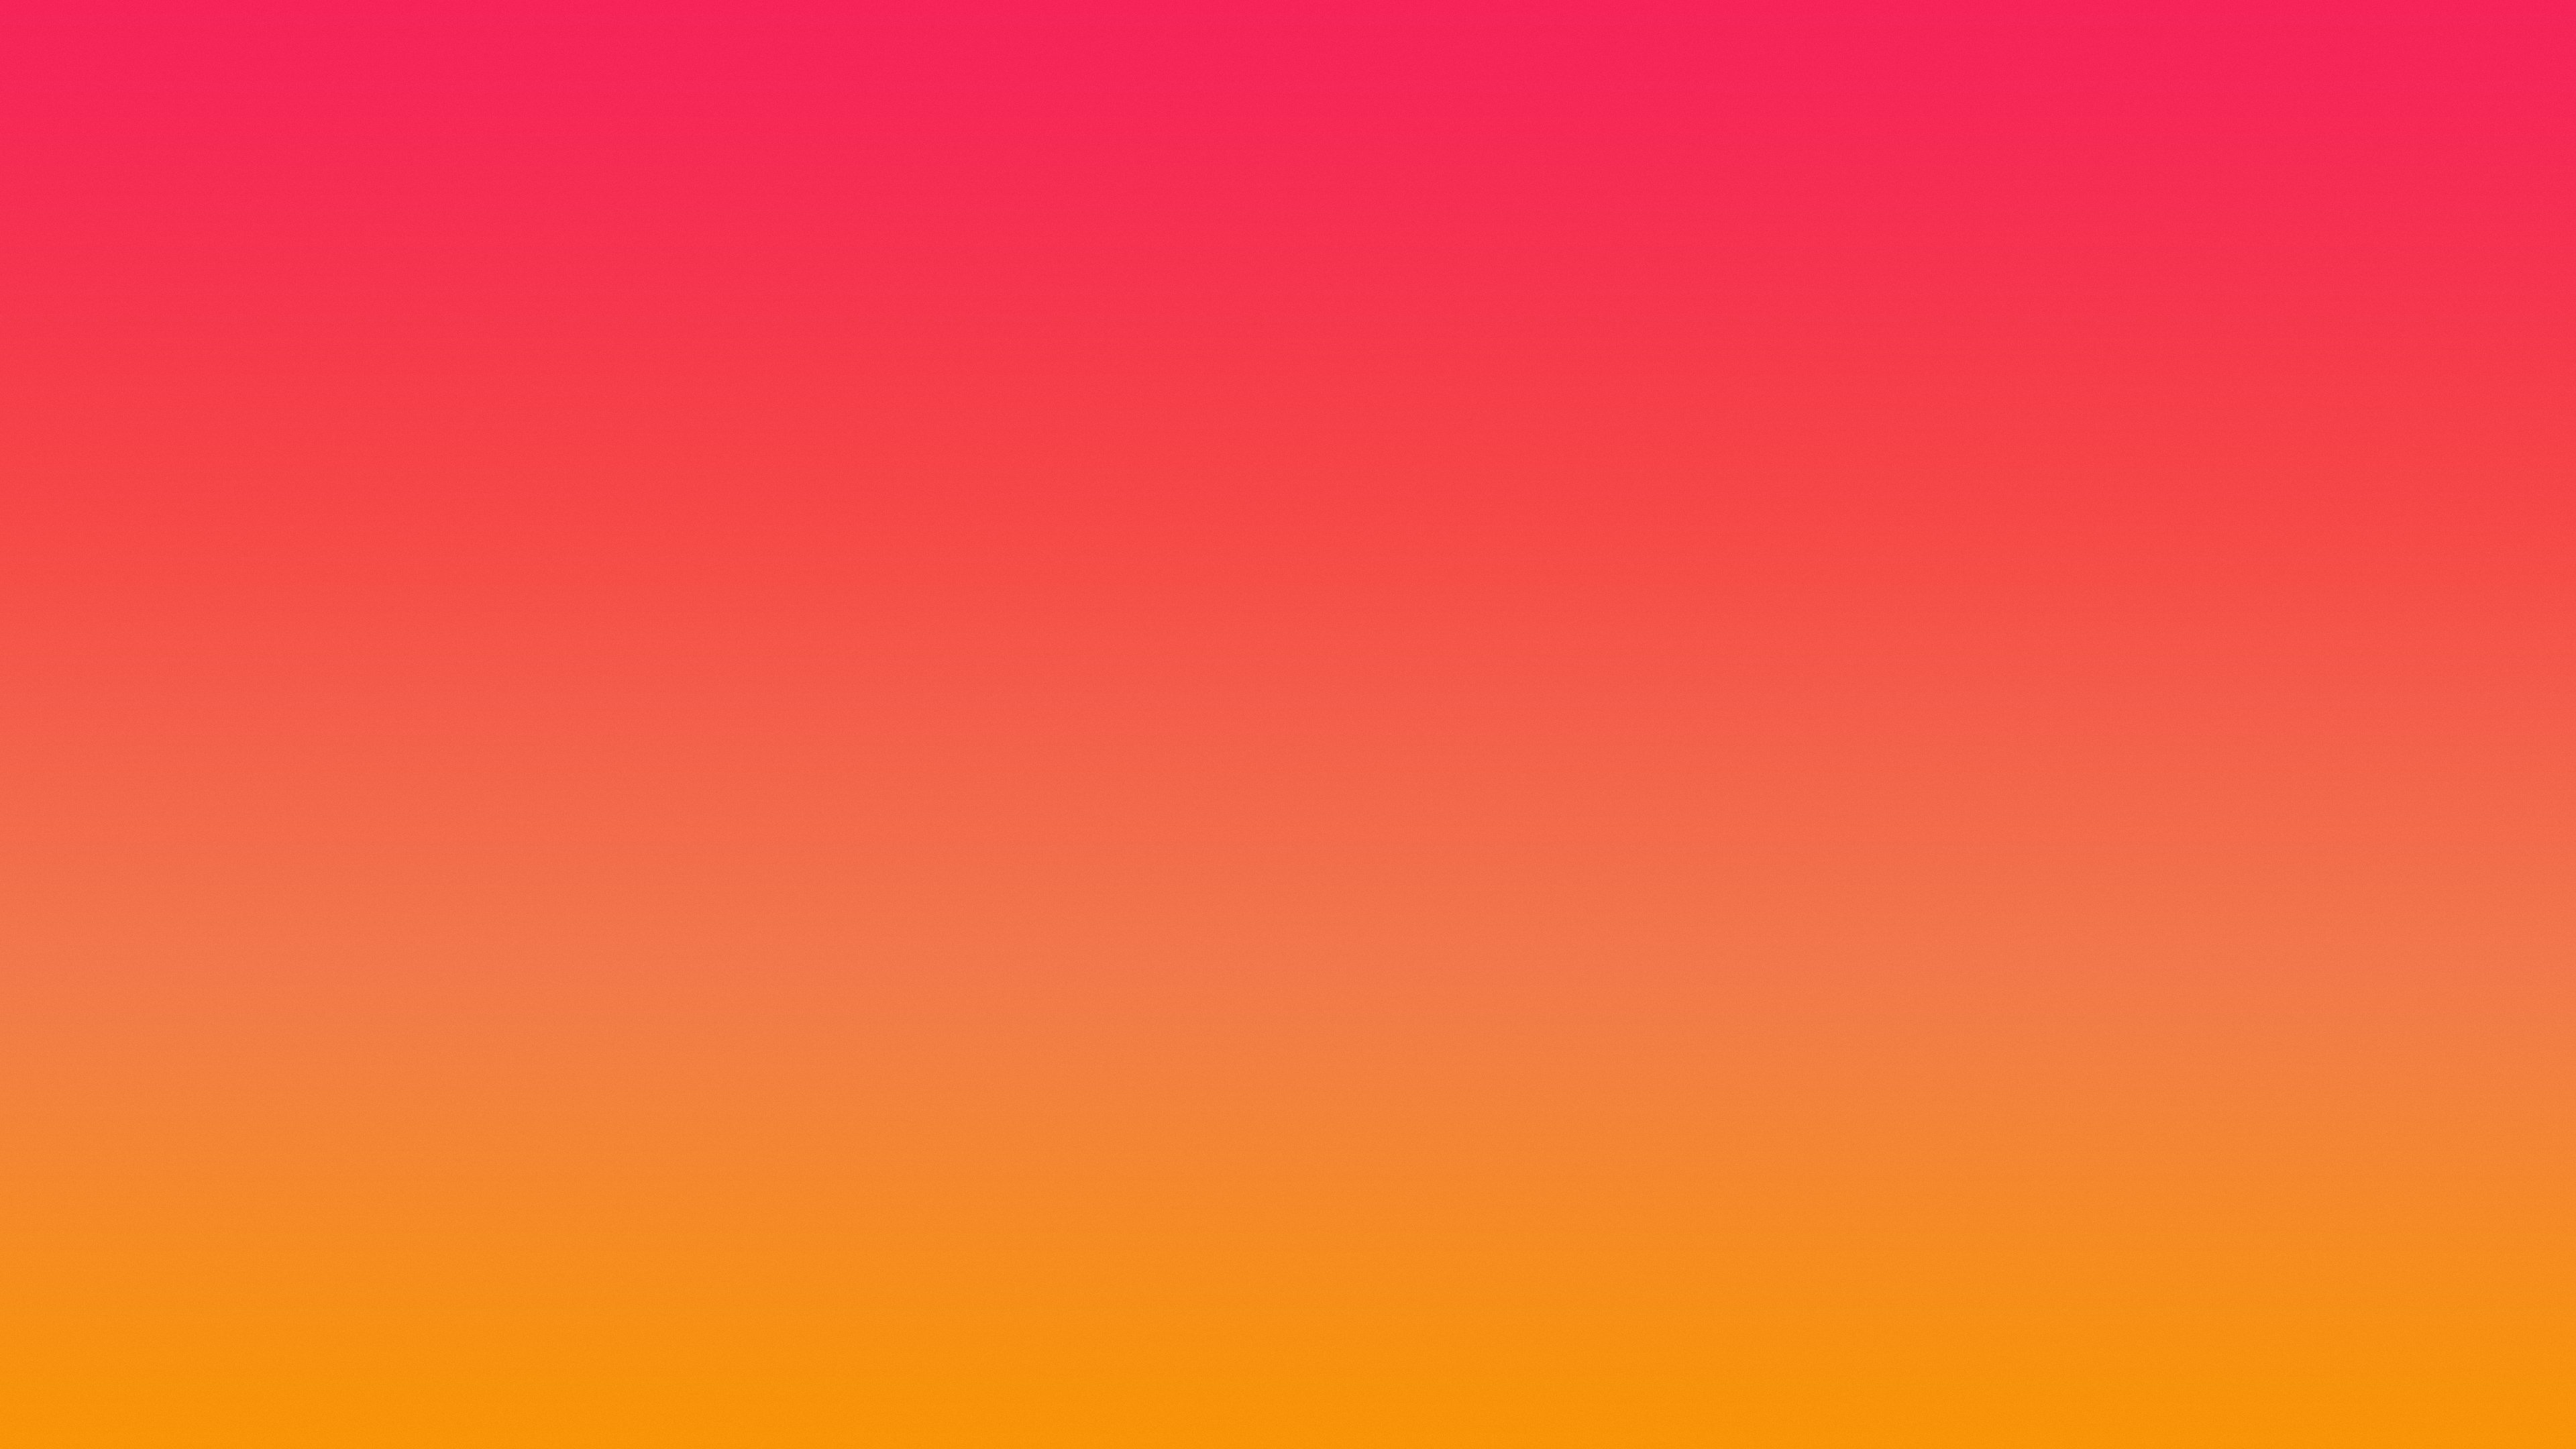 Pink And Orange Make What Color 28 Images Salmon Coral